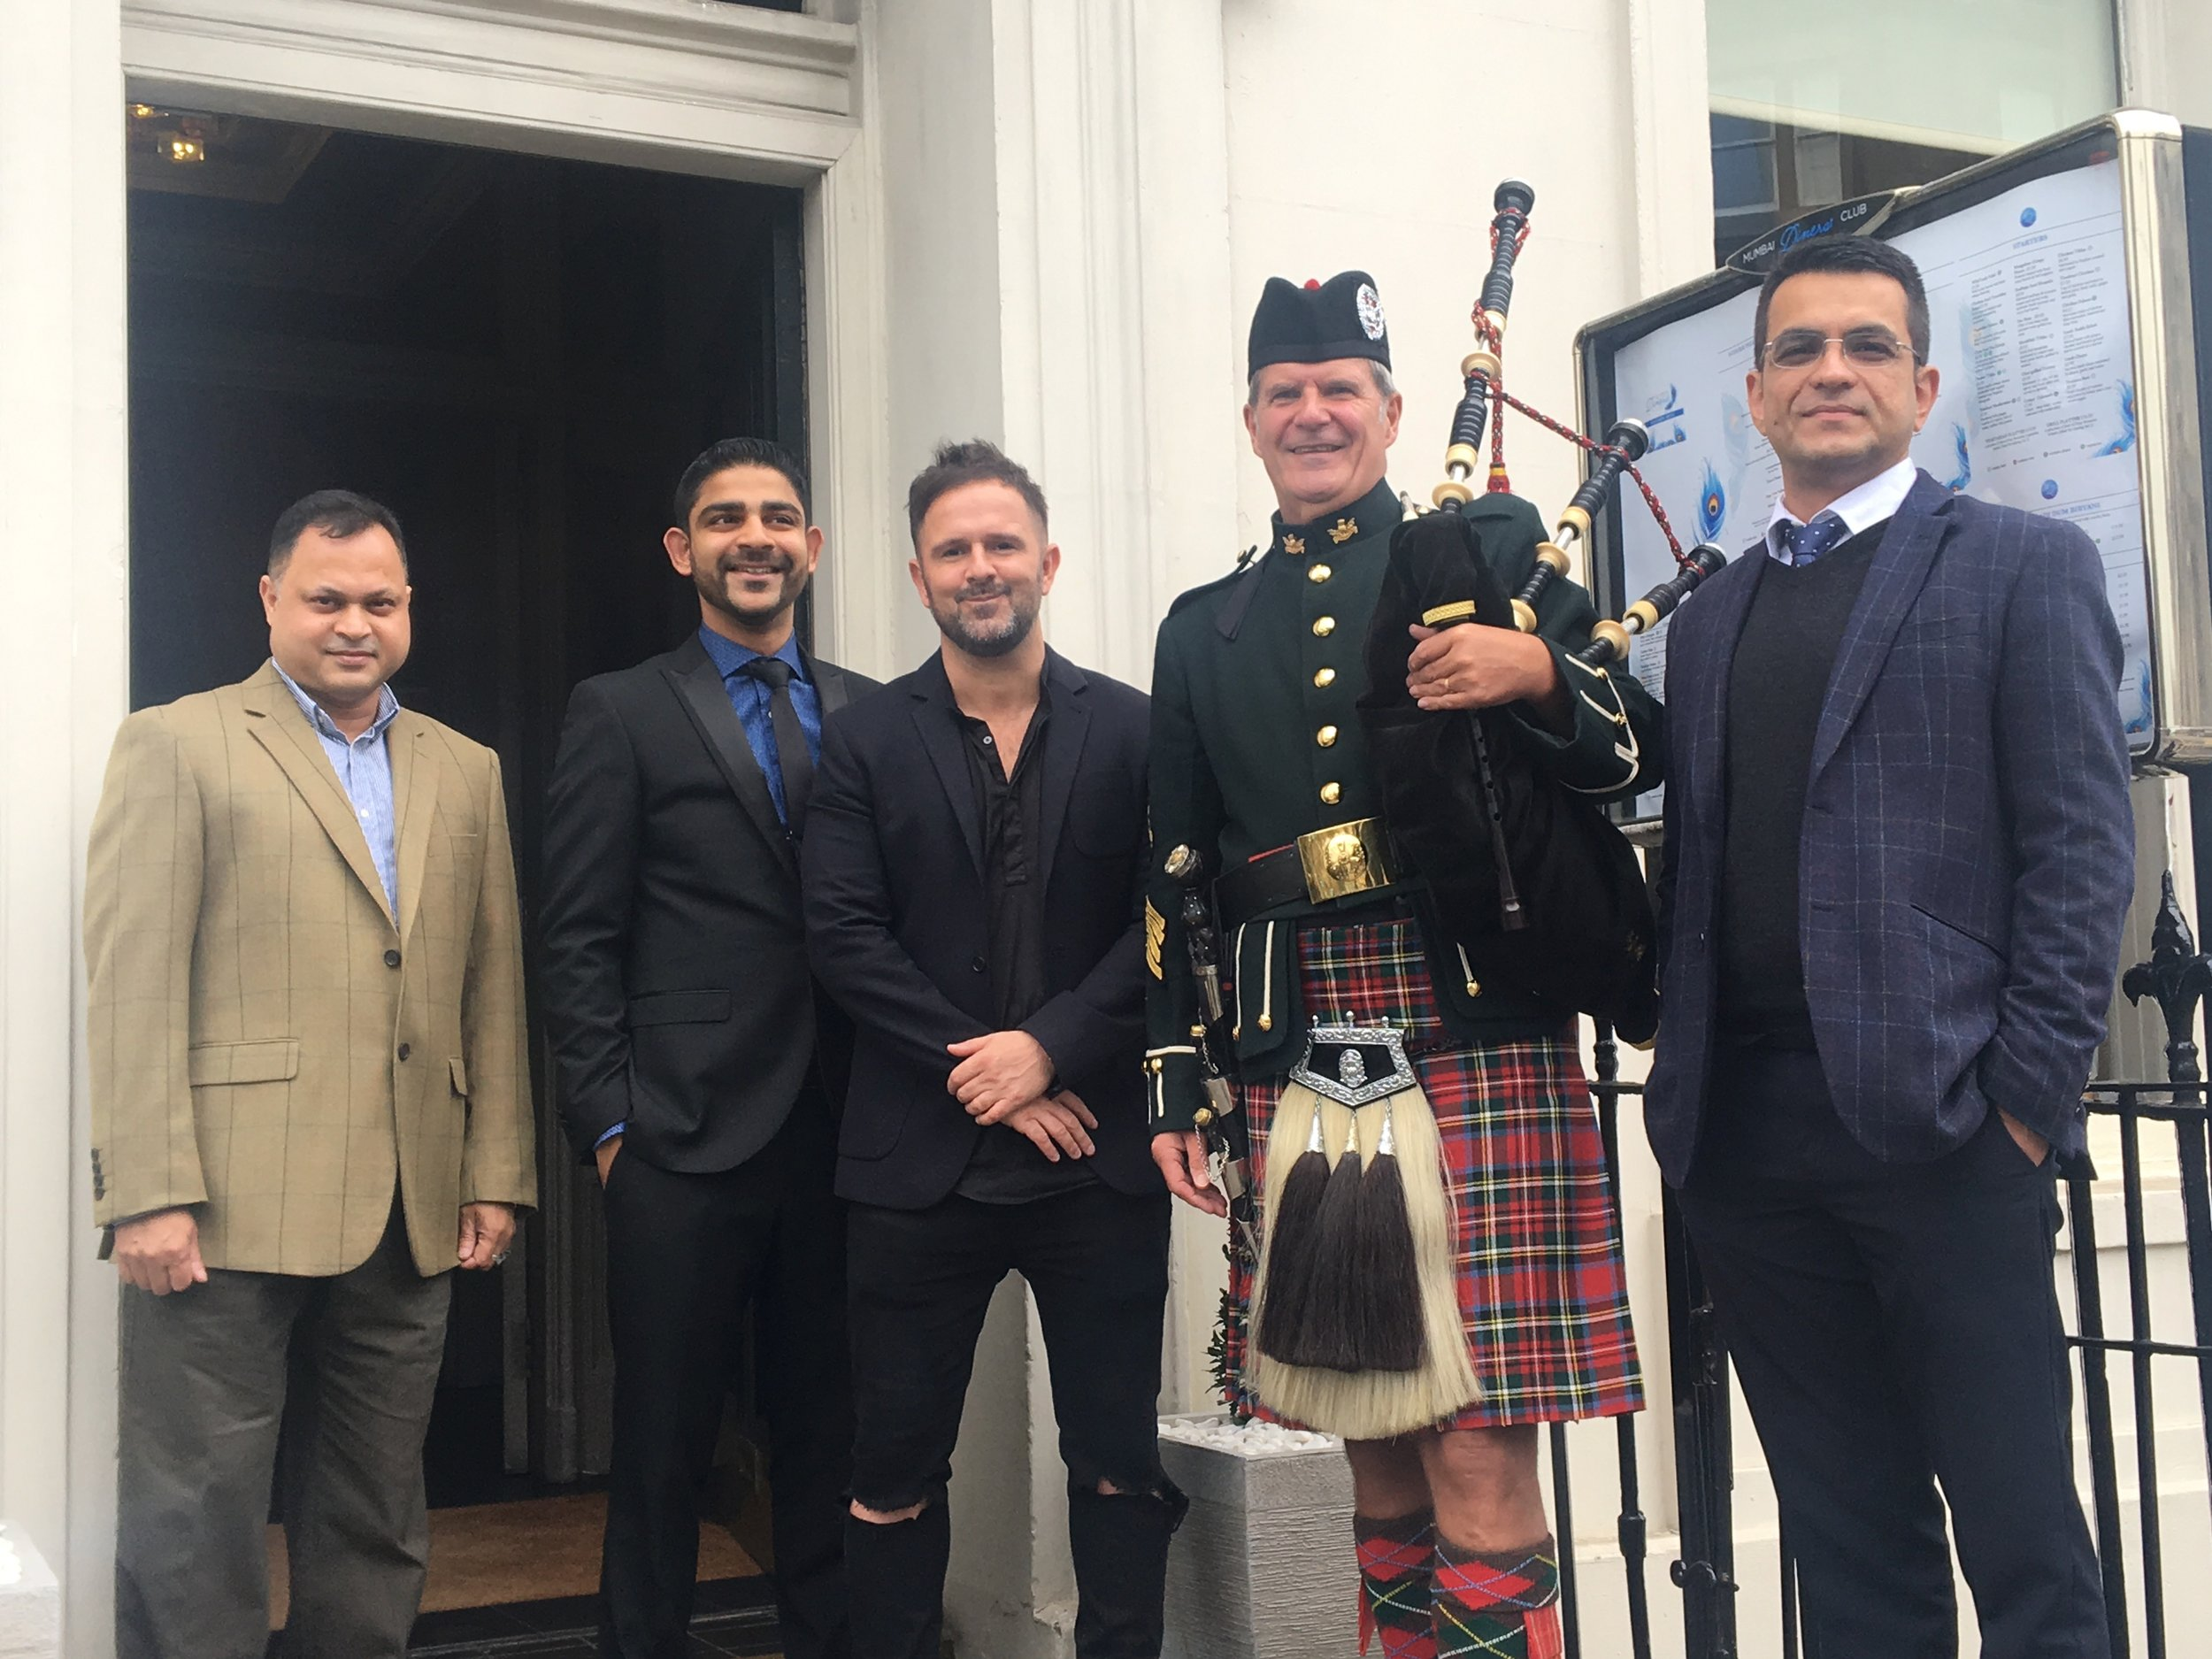 The new Indian Restaurant The Mumbai Diners Club Atholl Place Edinburgh